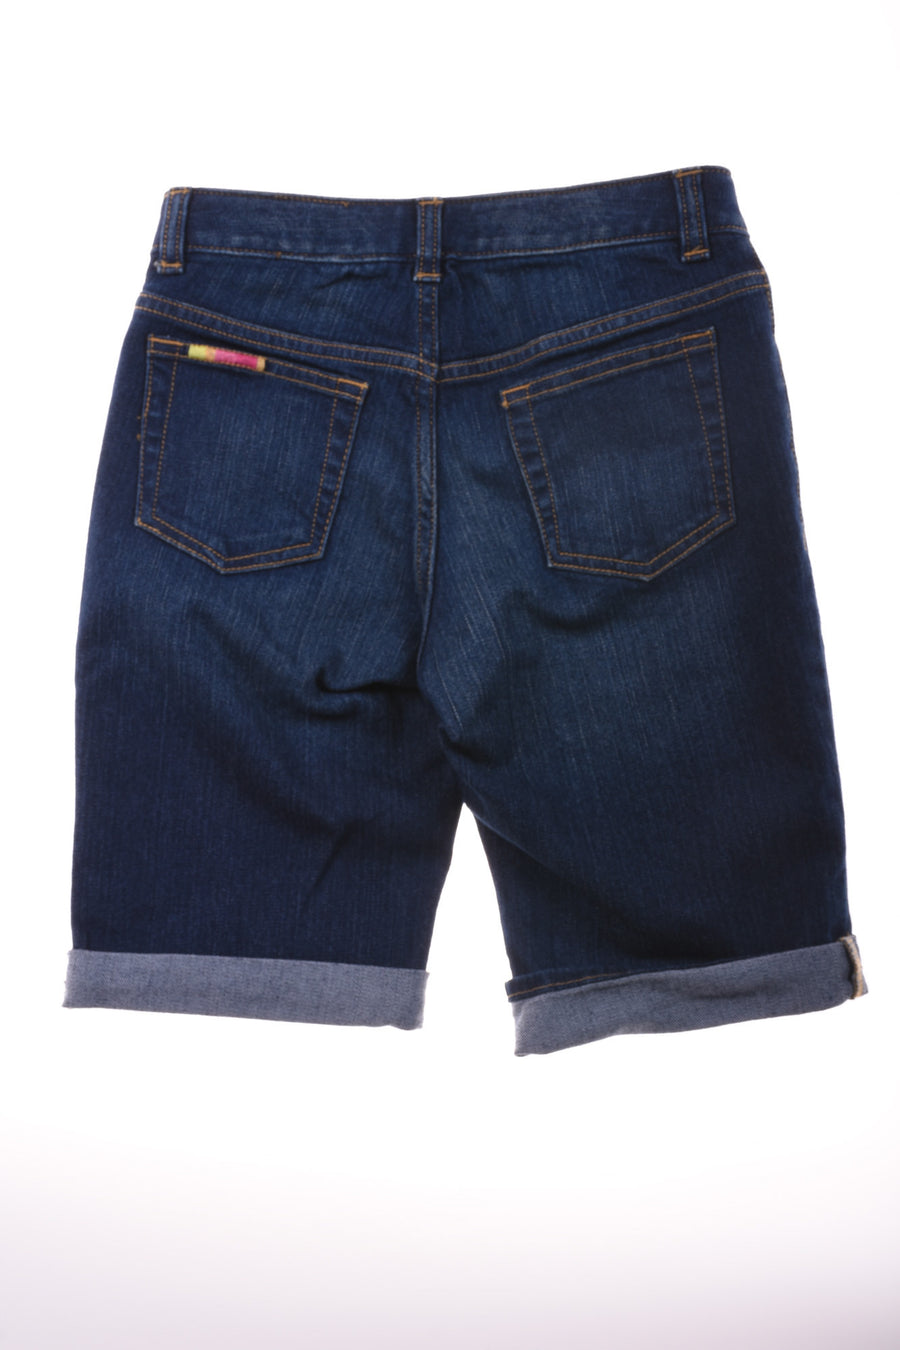 Girl's Shorts By Lands End